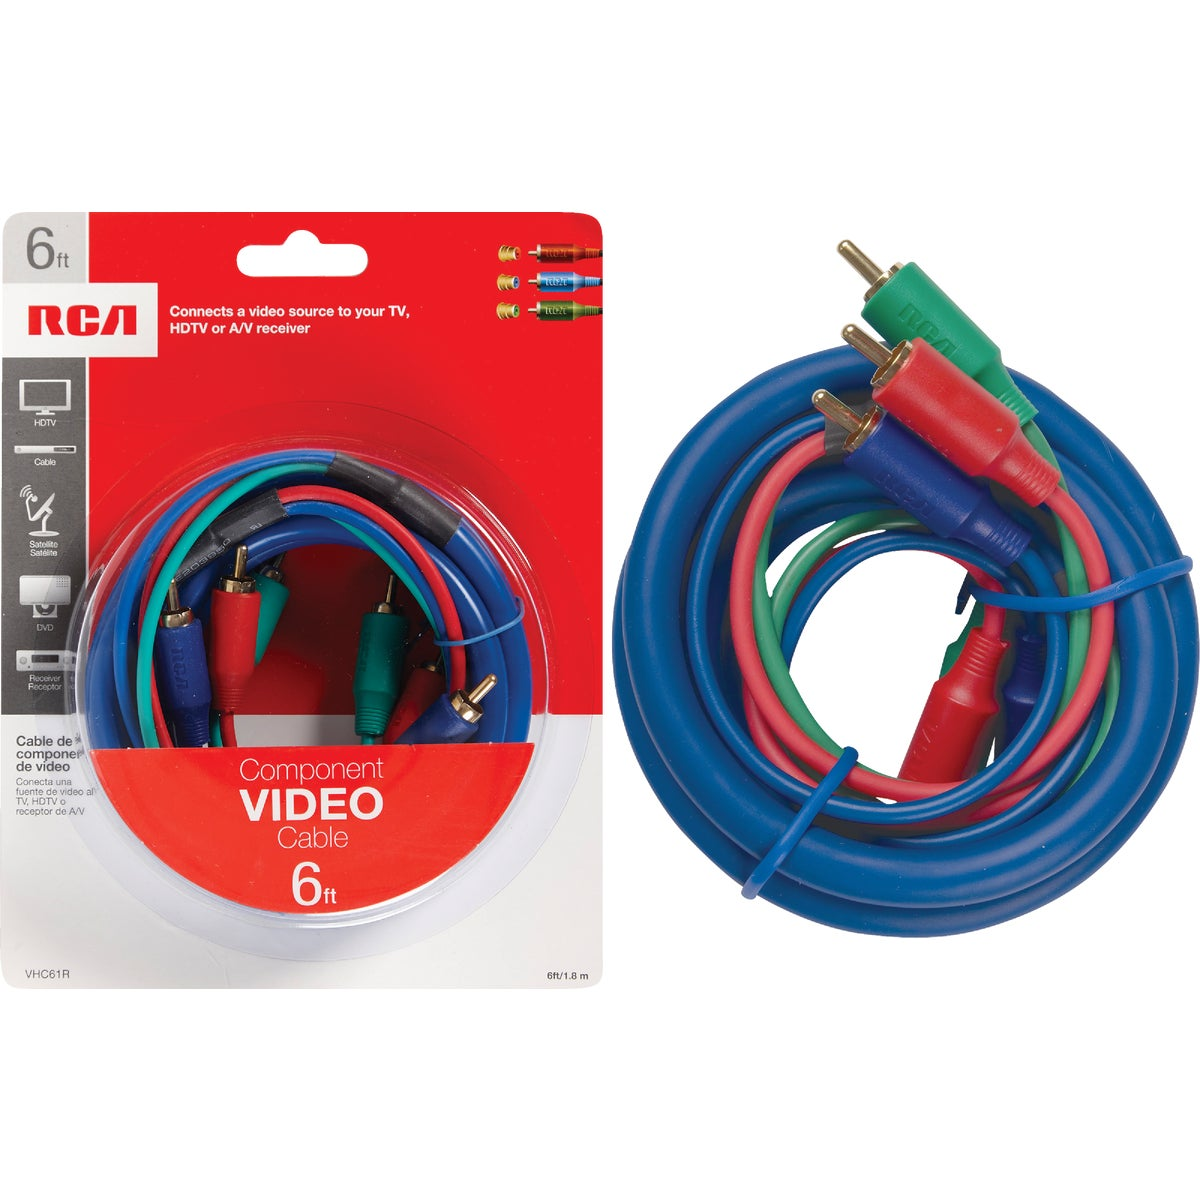 6' COMPONENT VIDEO CABLE - VHC61R by Audiovox Accessories